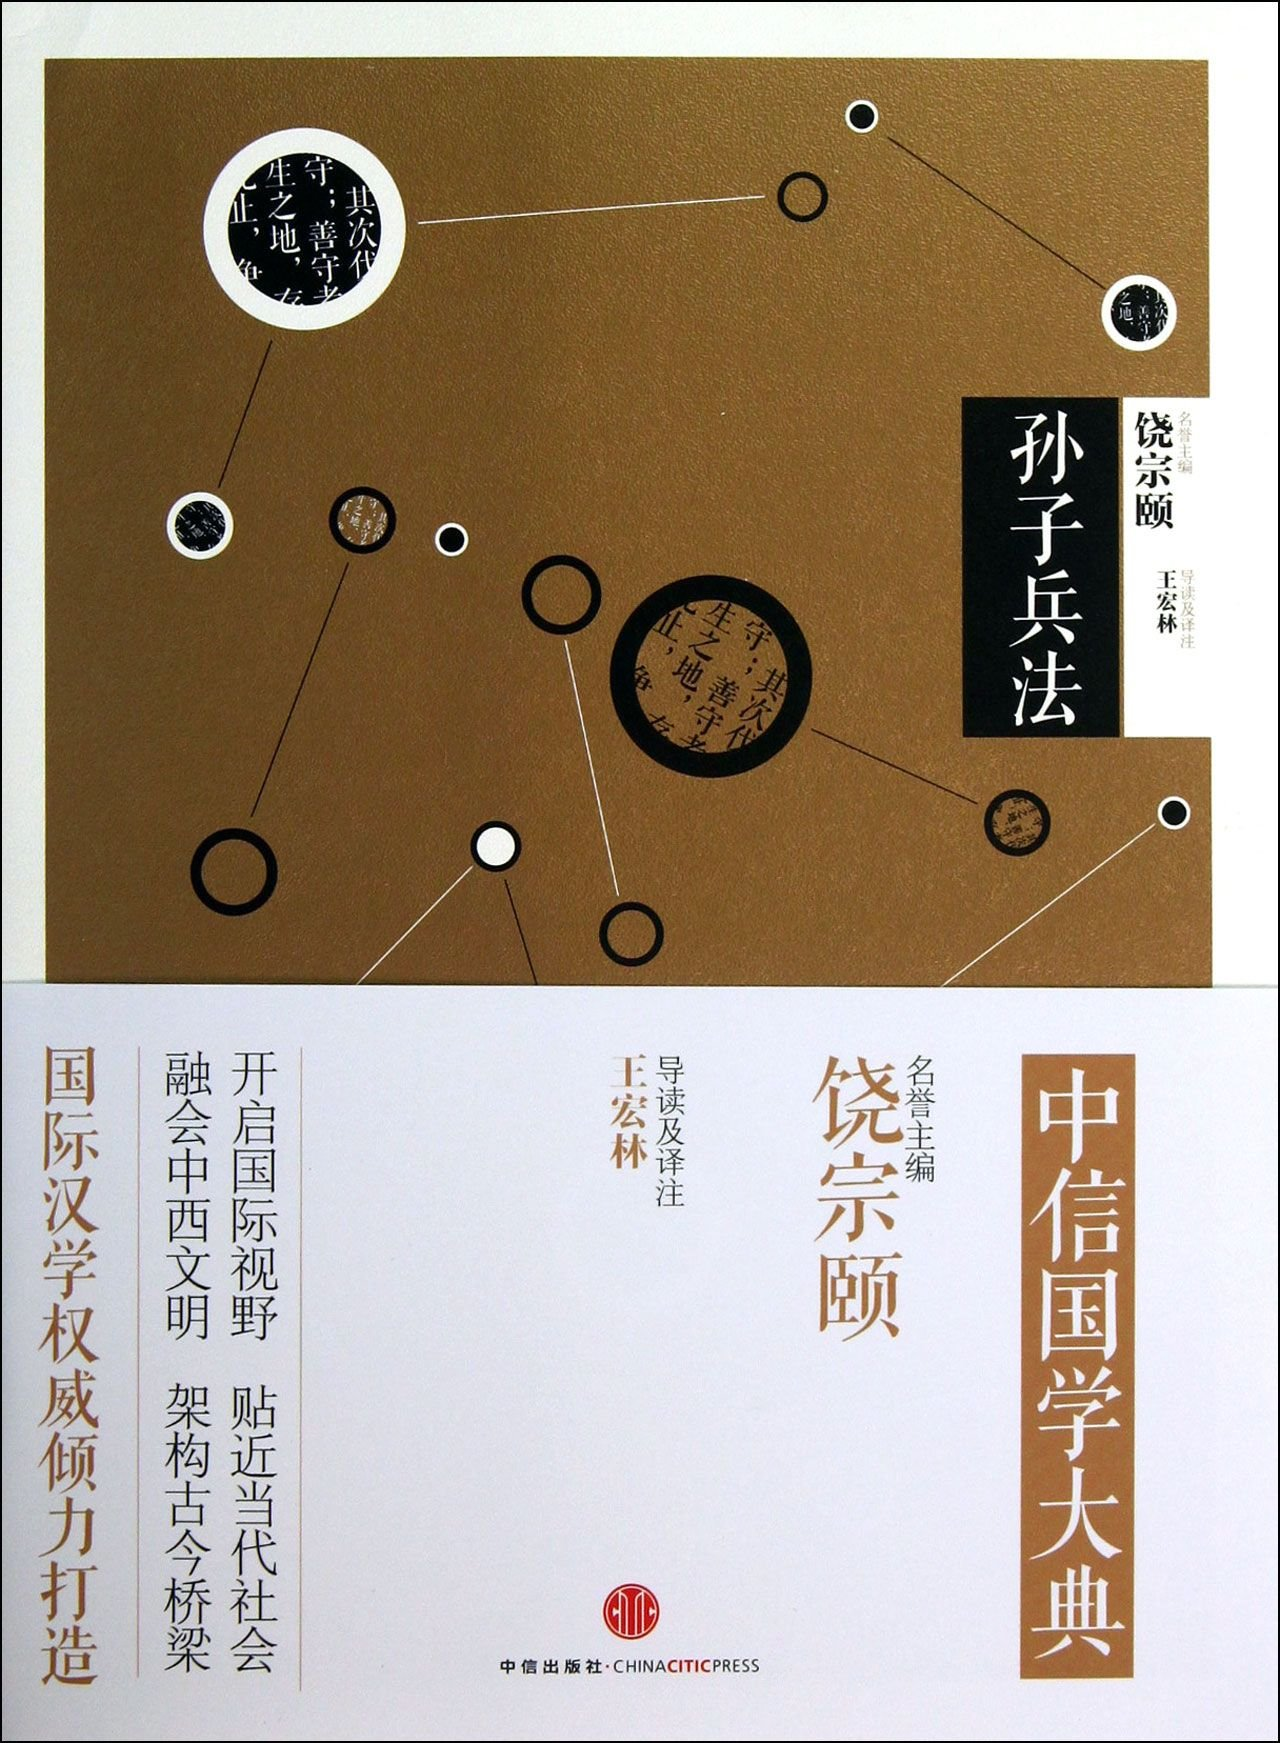 Download CITIC Sinology ceremony : The Art of War(Chinese Edition) PDF